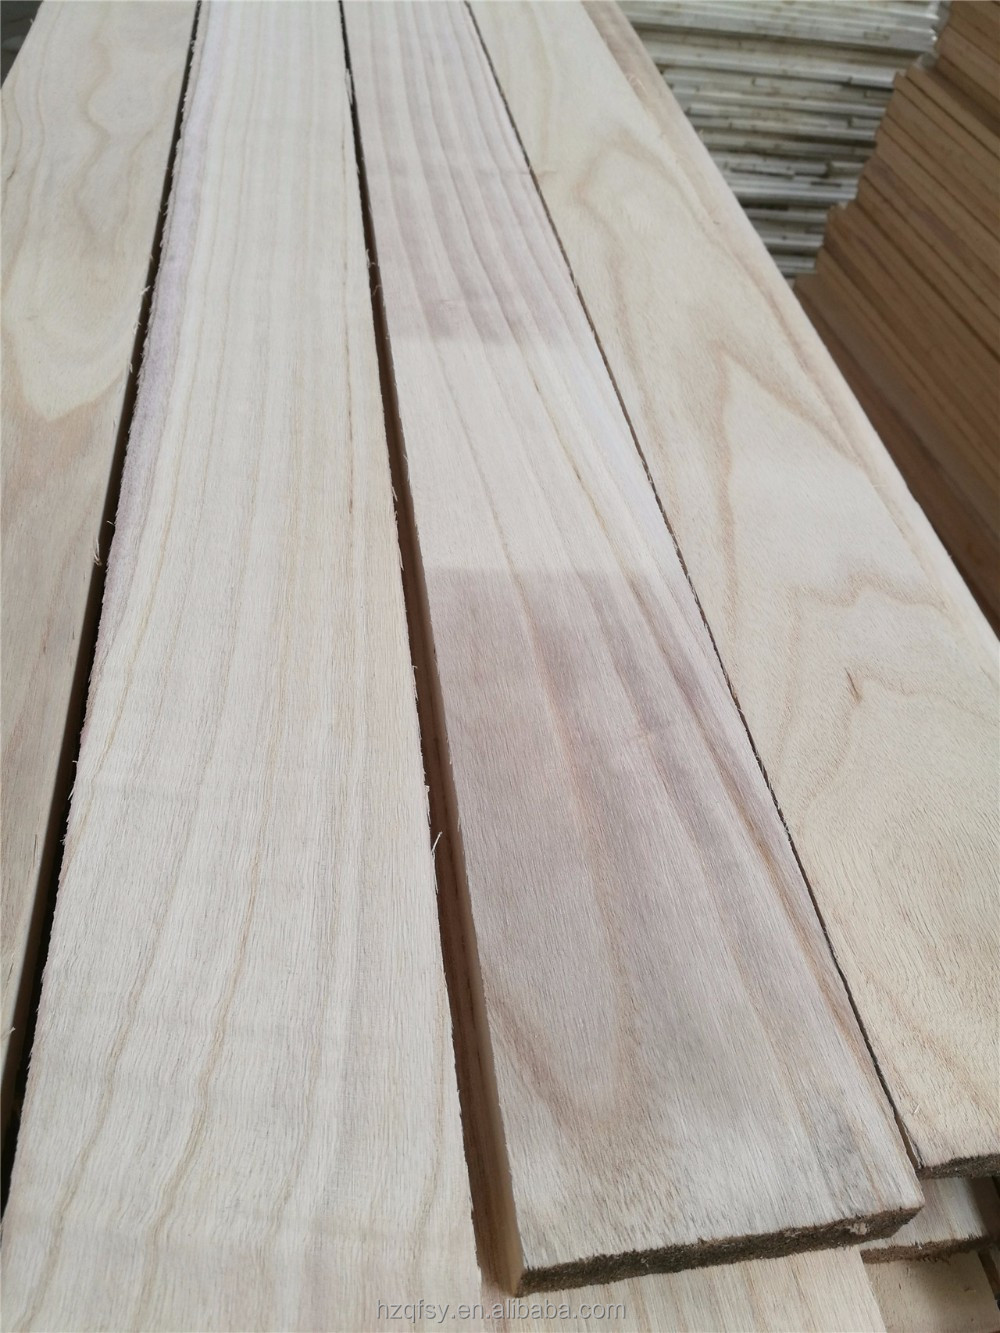 Solid wood paulownia finger jointed board, natural color paulownia wood